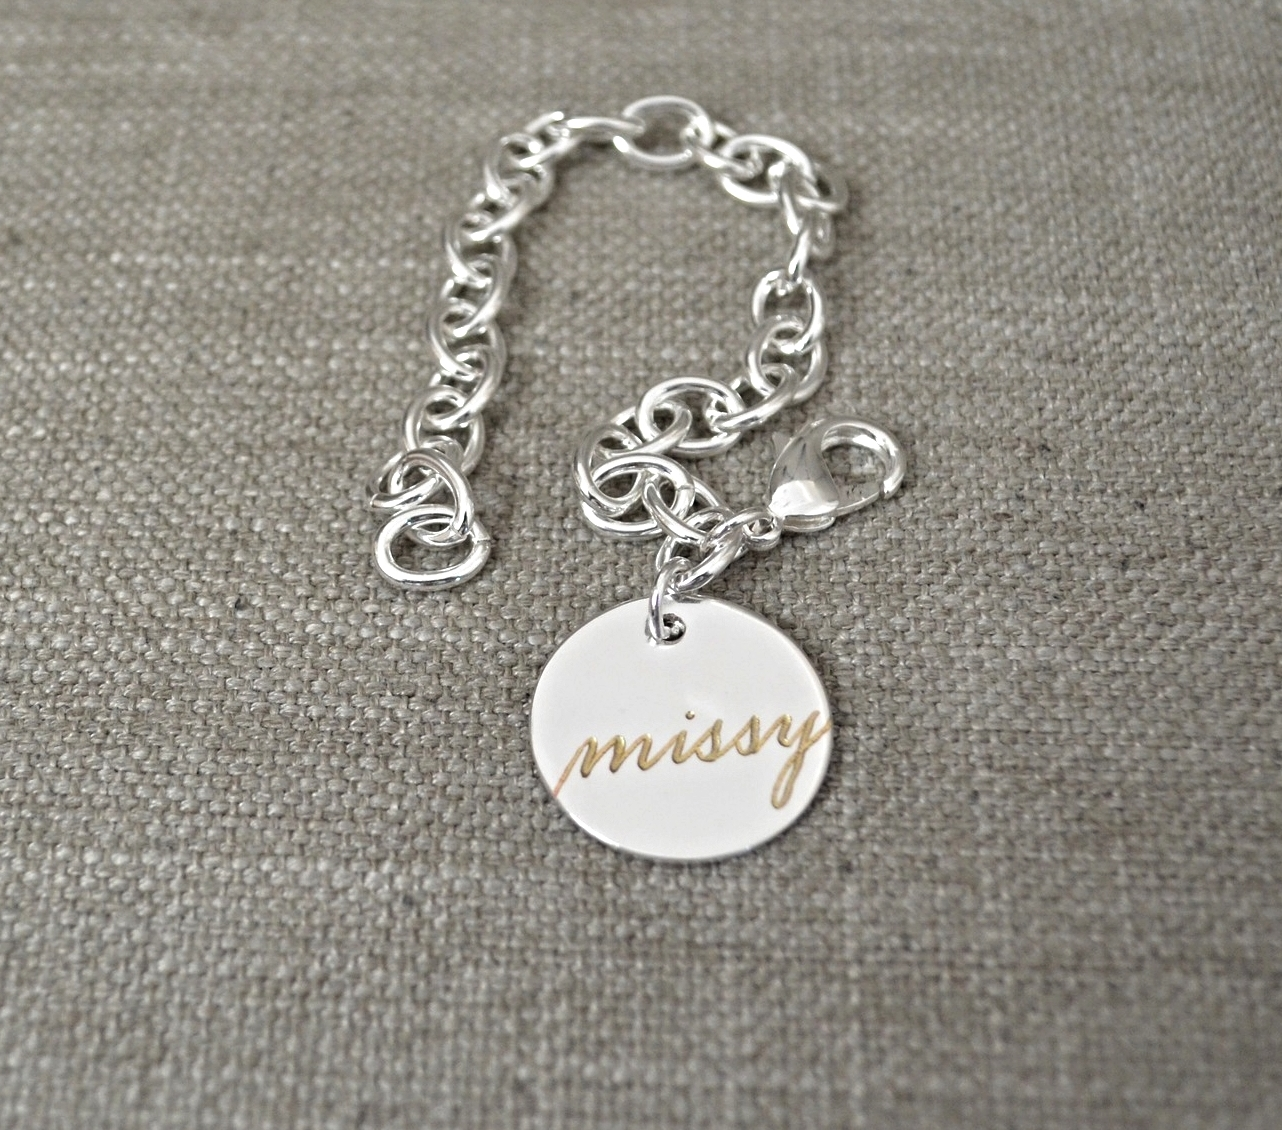 Jewelry Engraving Near Me - Slinging Ink